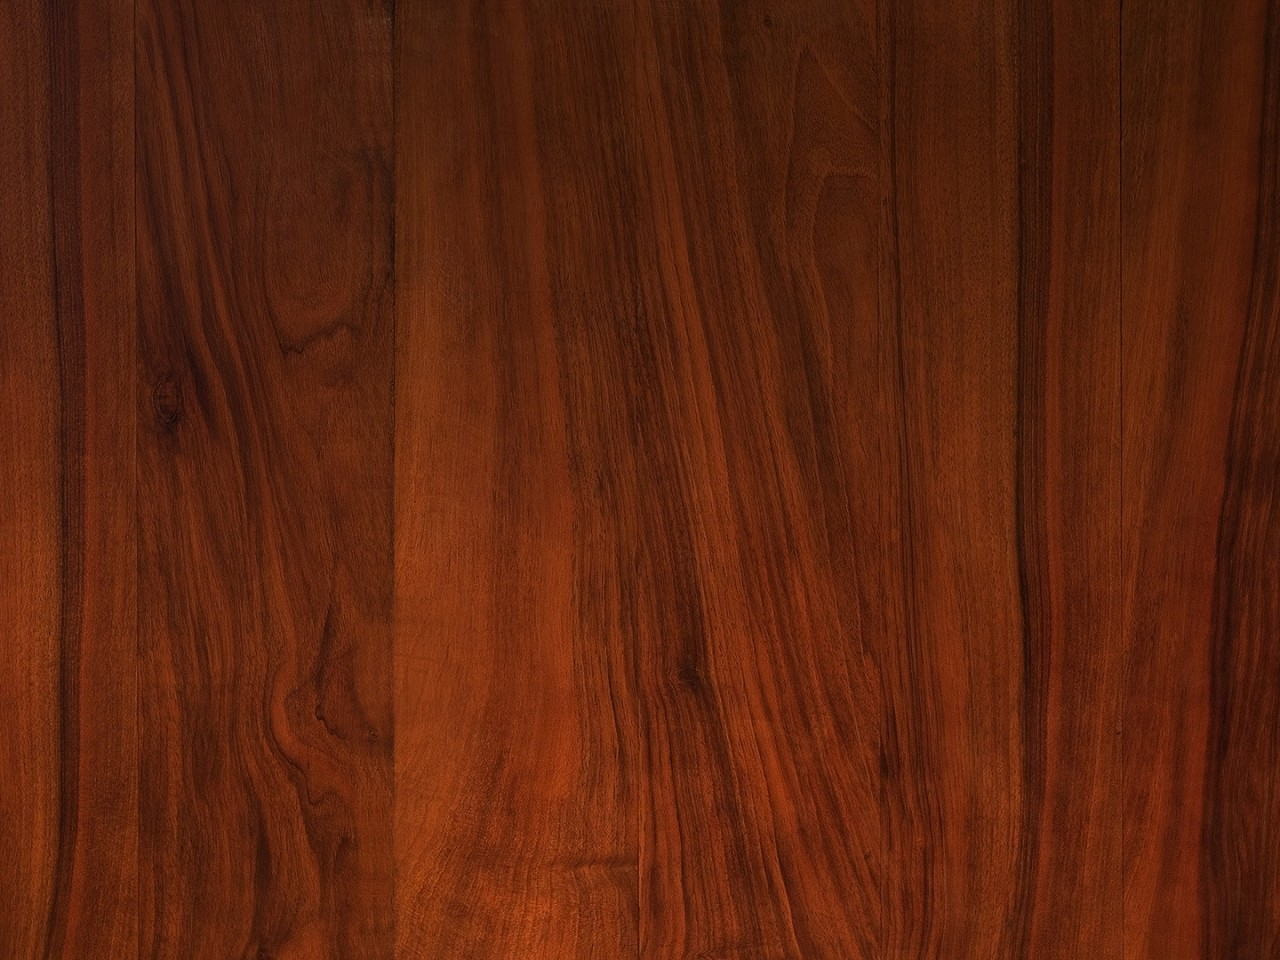 Wood OS X Wallpaper HD Wallpapers